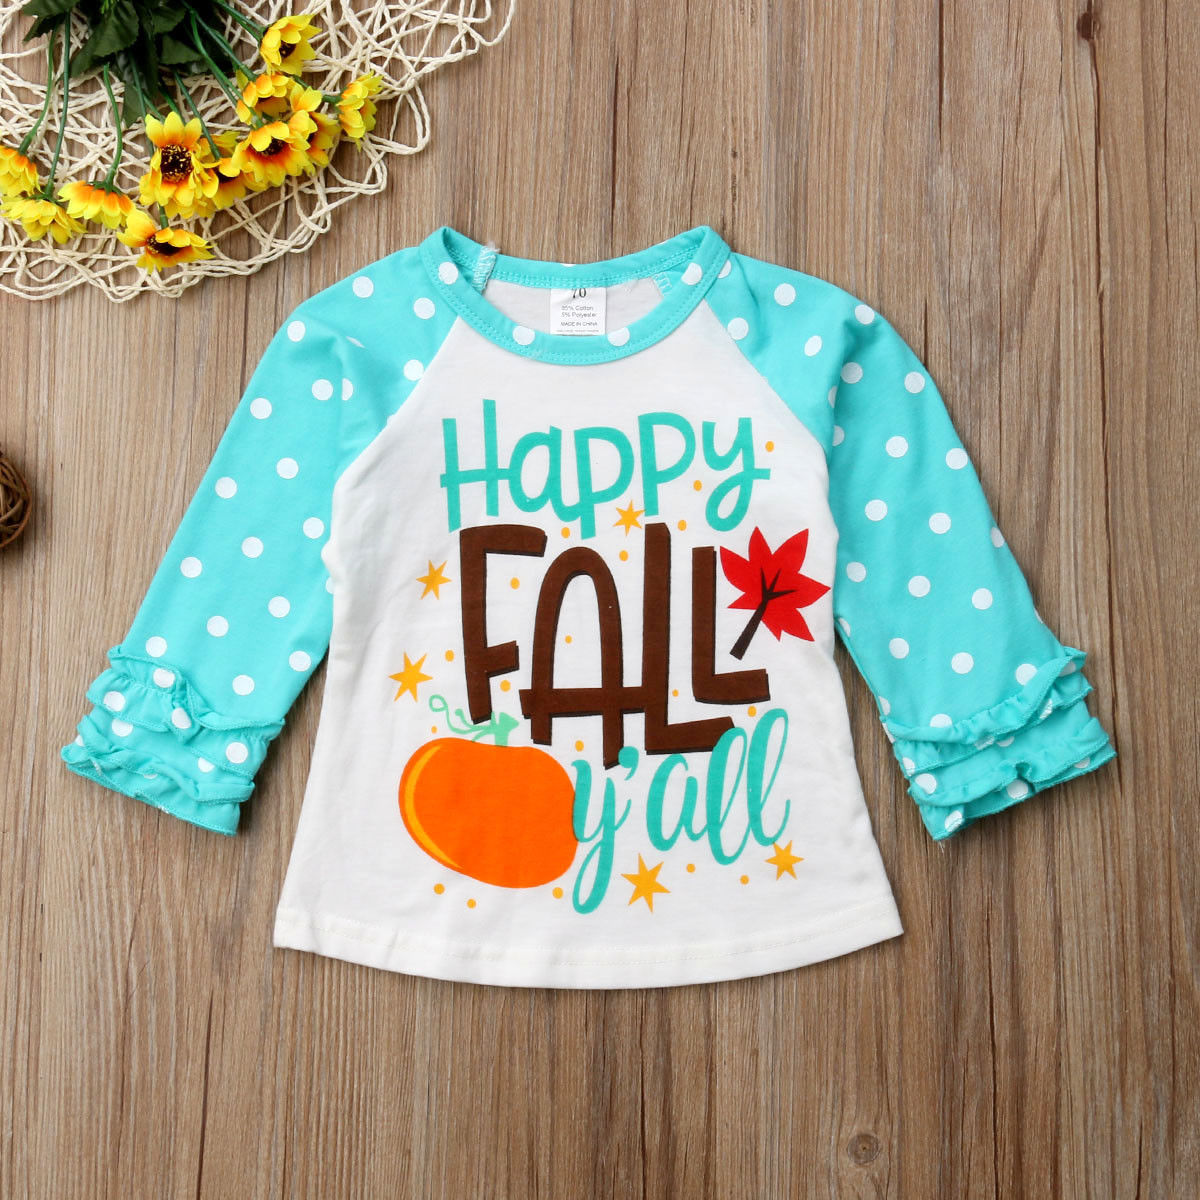 T-Shirt Unicorn Long-Sleeve Toddler Kids Baby Boy Cotton New Print for Floral-Side